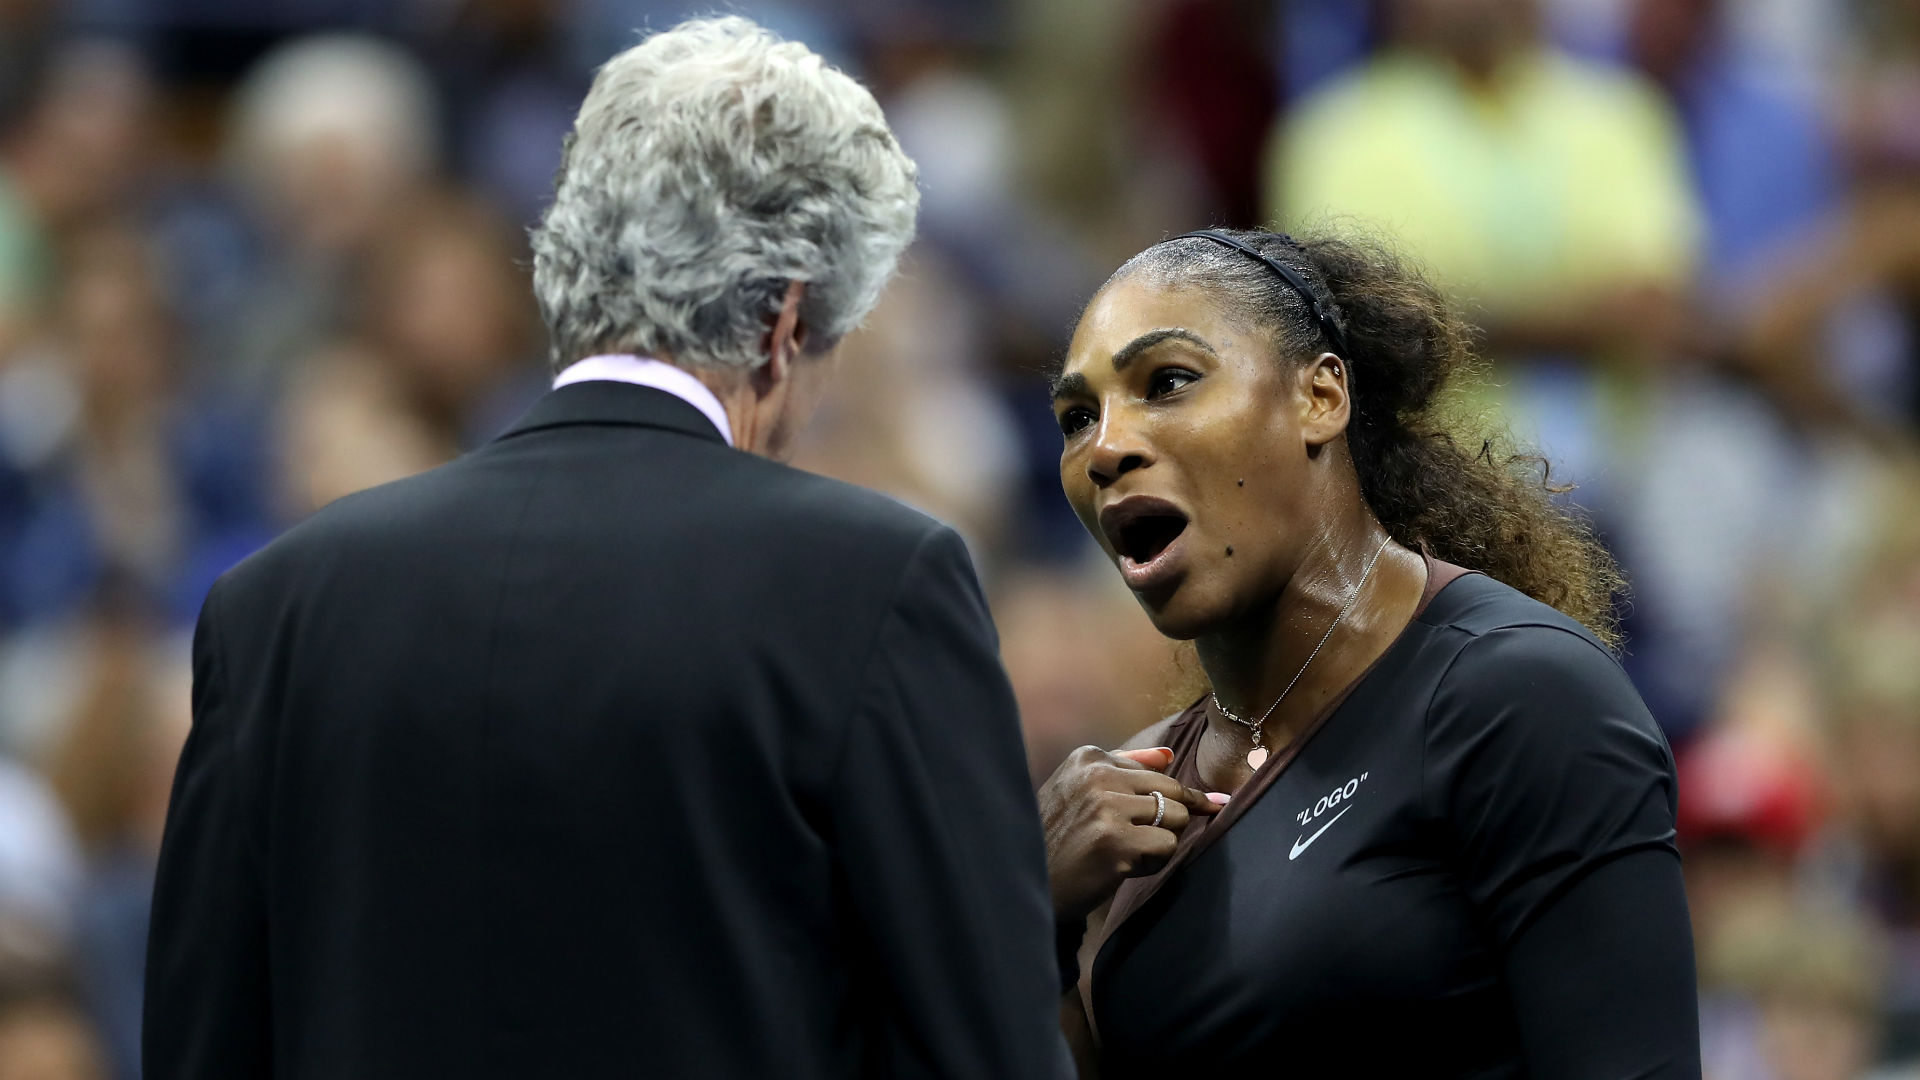 Czech Tennis Star Fires At Serena Williams for US Open Behavior